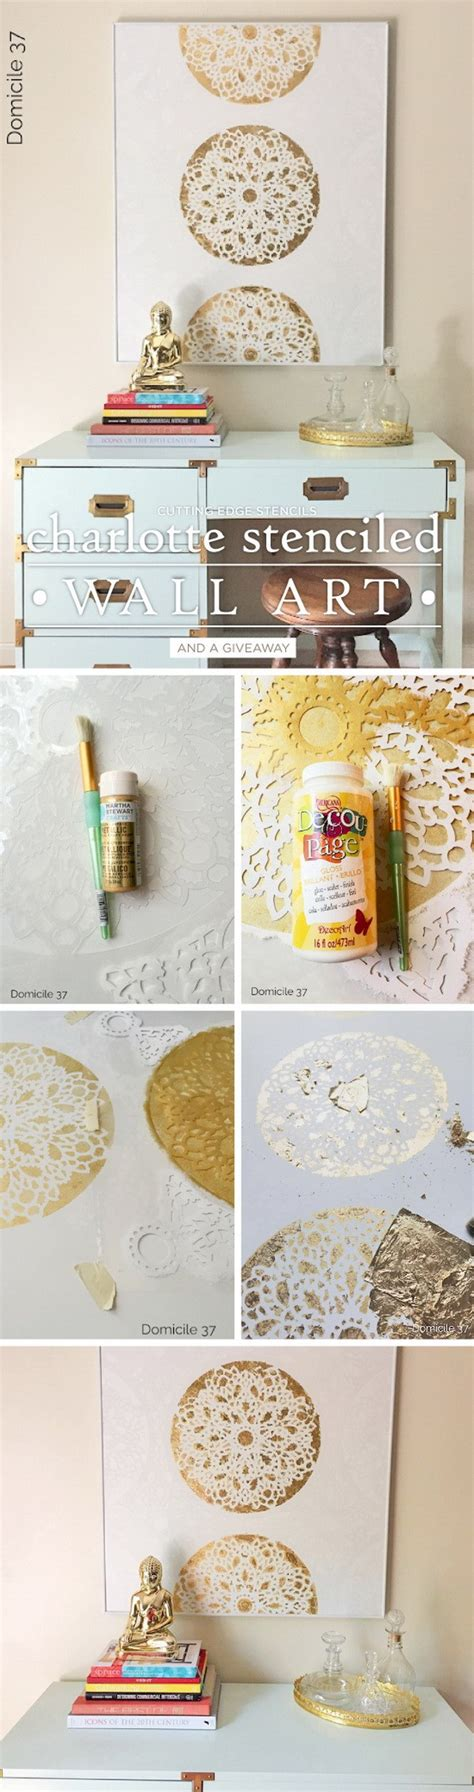 diy home decor wall 25 stunning diy wall art ideas tutorials for creative